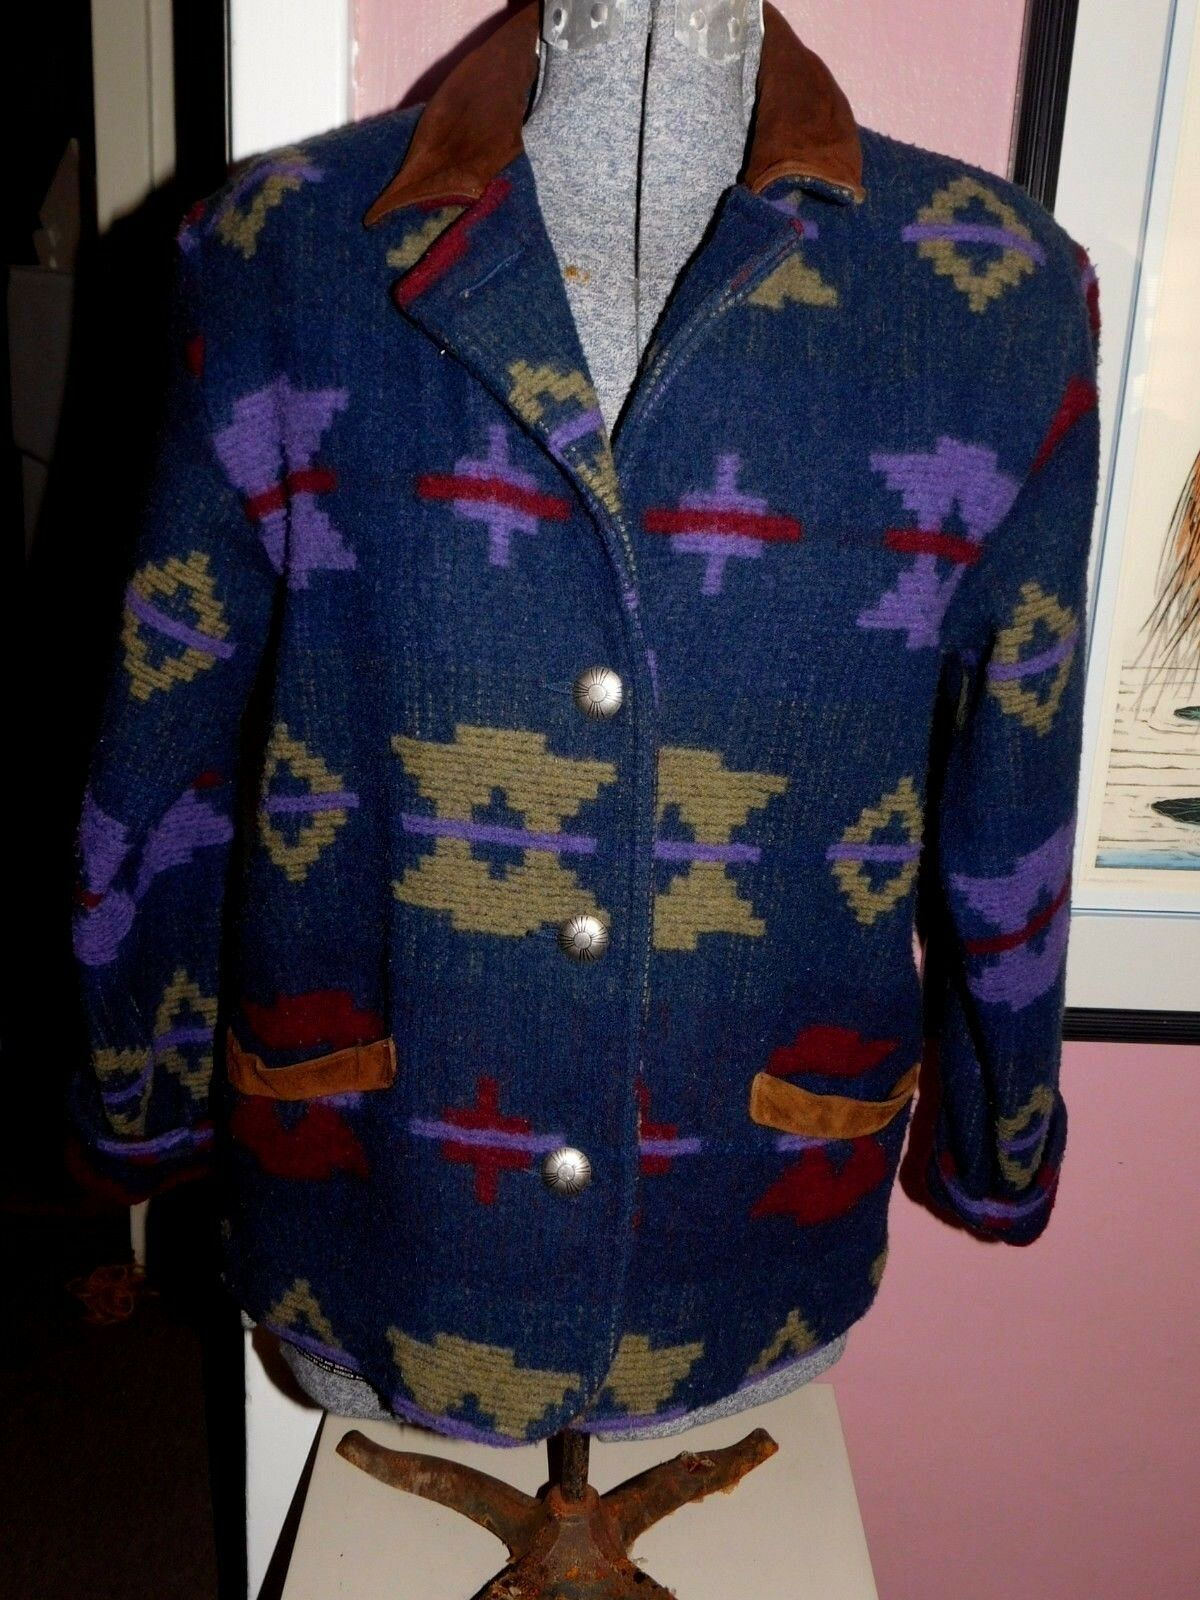 VINTAGE VINTAGE VINTAGE WOOLRICH WOMAN'S AZTEC, NATIVE AMERICAN DESIGN COAT, blueE, PURPLE, RED 88e56c